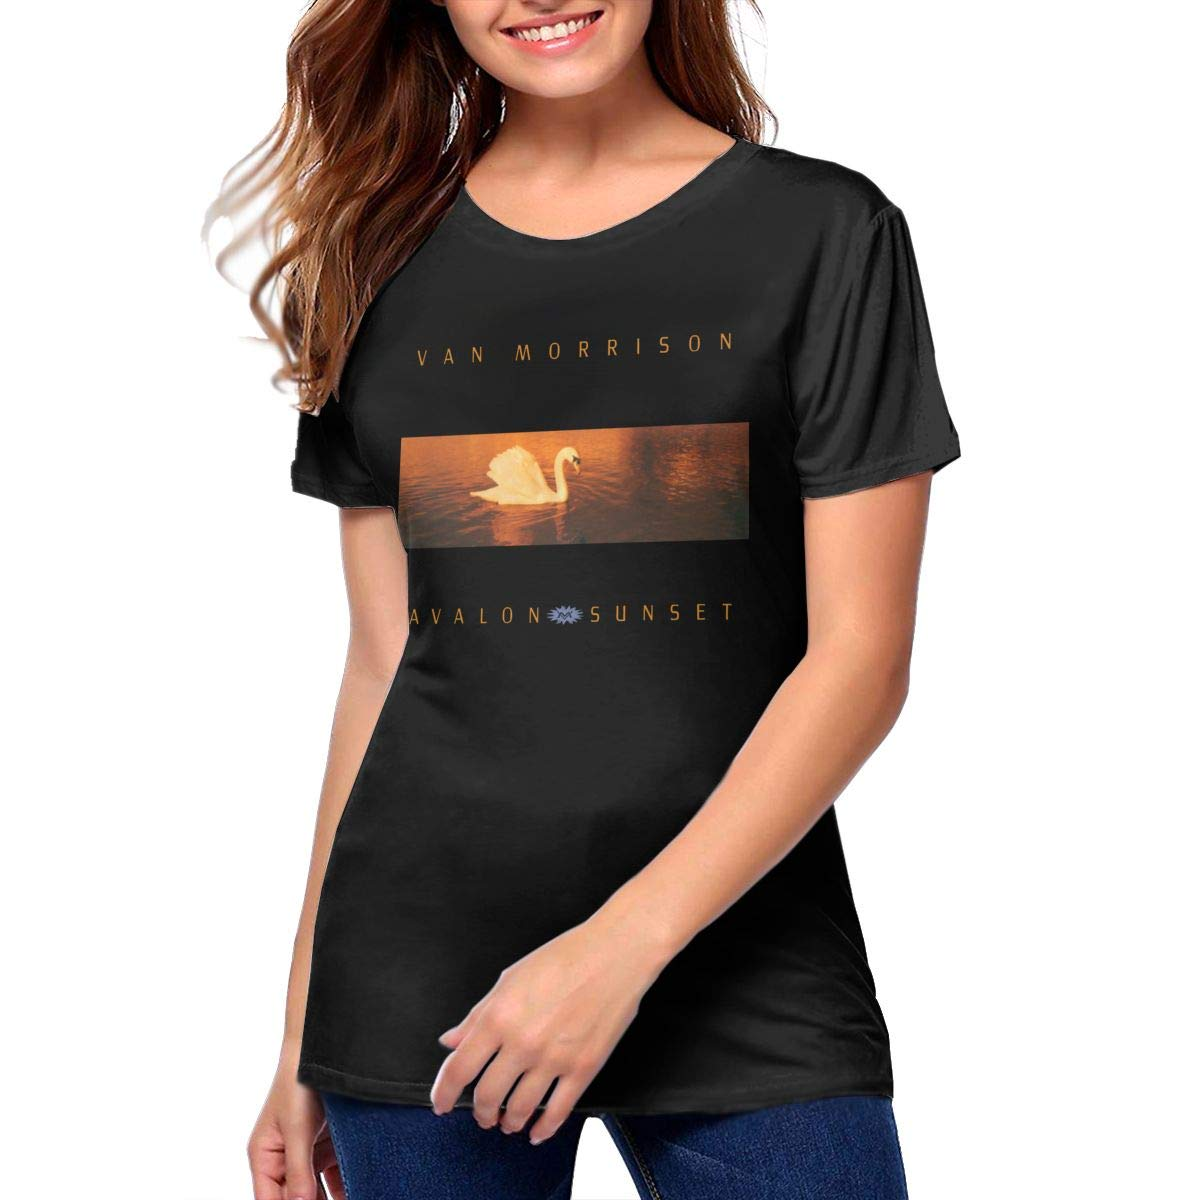 Van Morrison Avalon Sunset Sports And Fitness Womens Printed Shirts